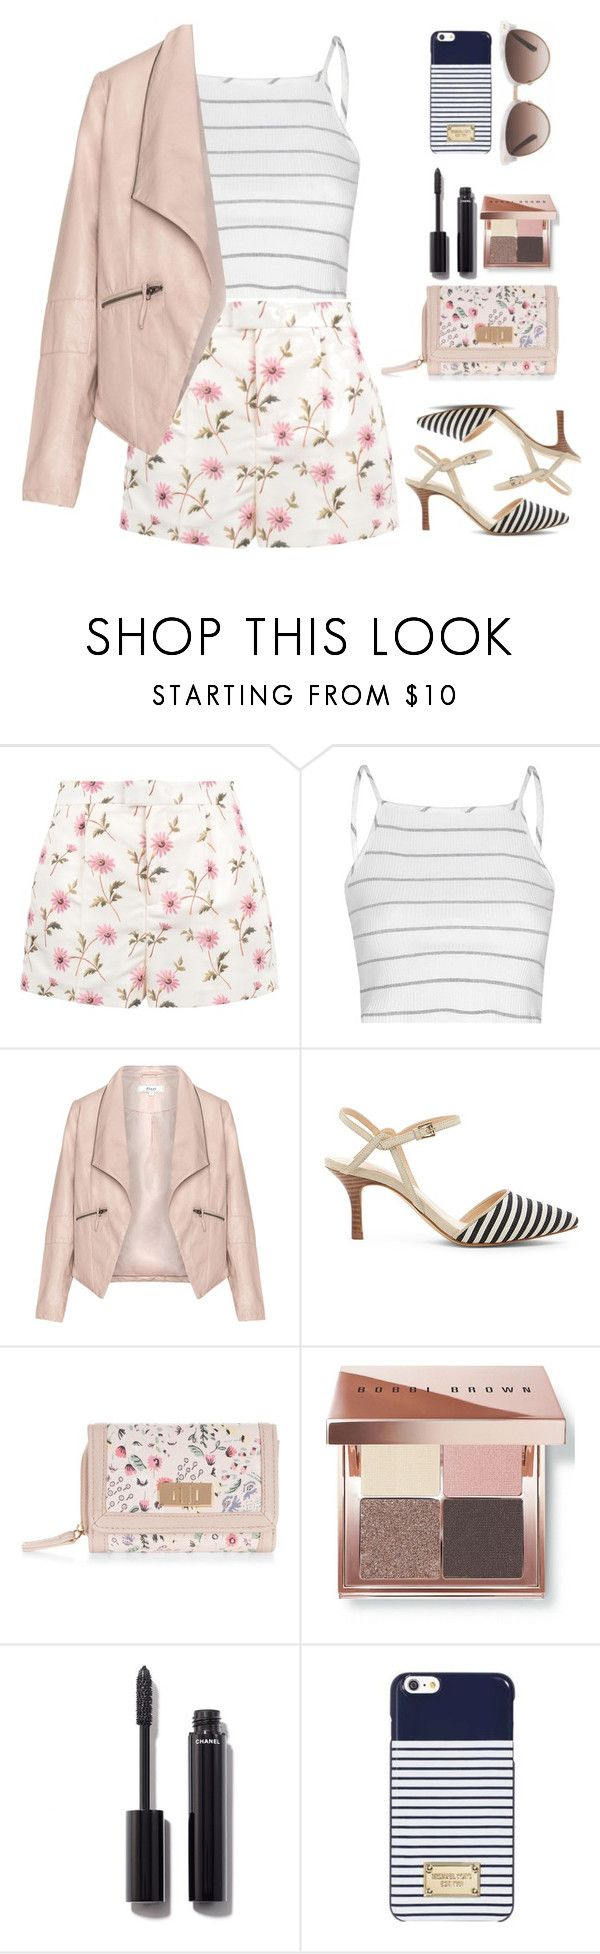 """""""Pattern Mix Master"""" by forevagorgeous ❤ liked on Polyvore featuring RED Valentino, Glamorous, Zizzi, Sole Society, New Look, Bobbi Brown Cosmetics, Chanel, Michael Kors, Gucci and patternmixing"""